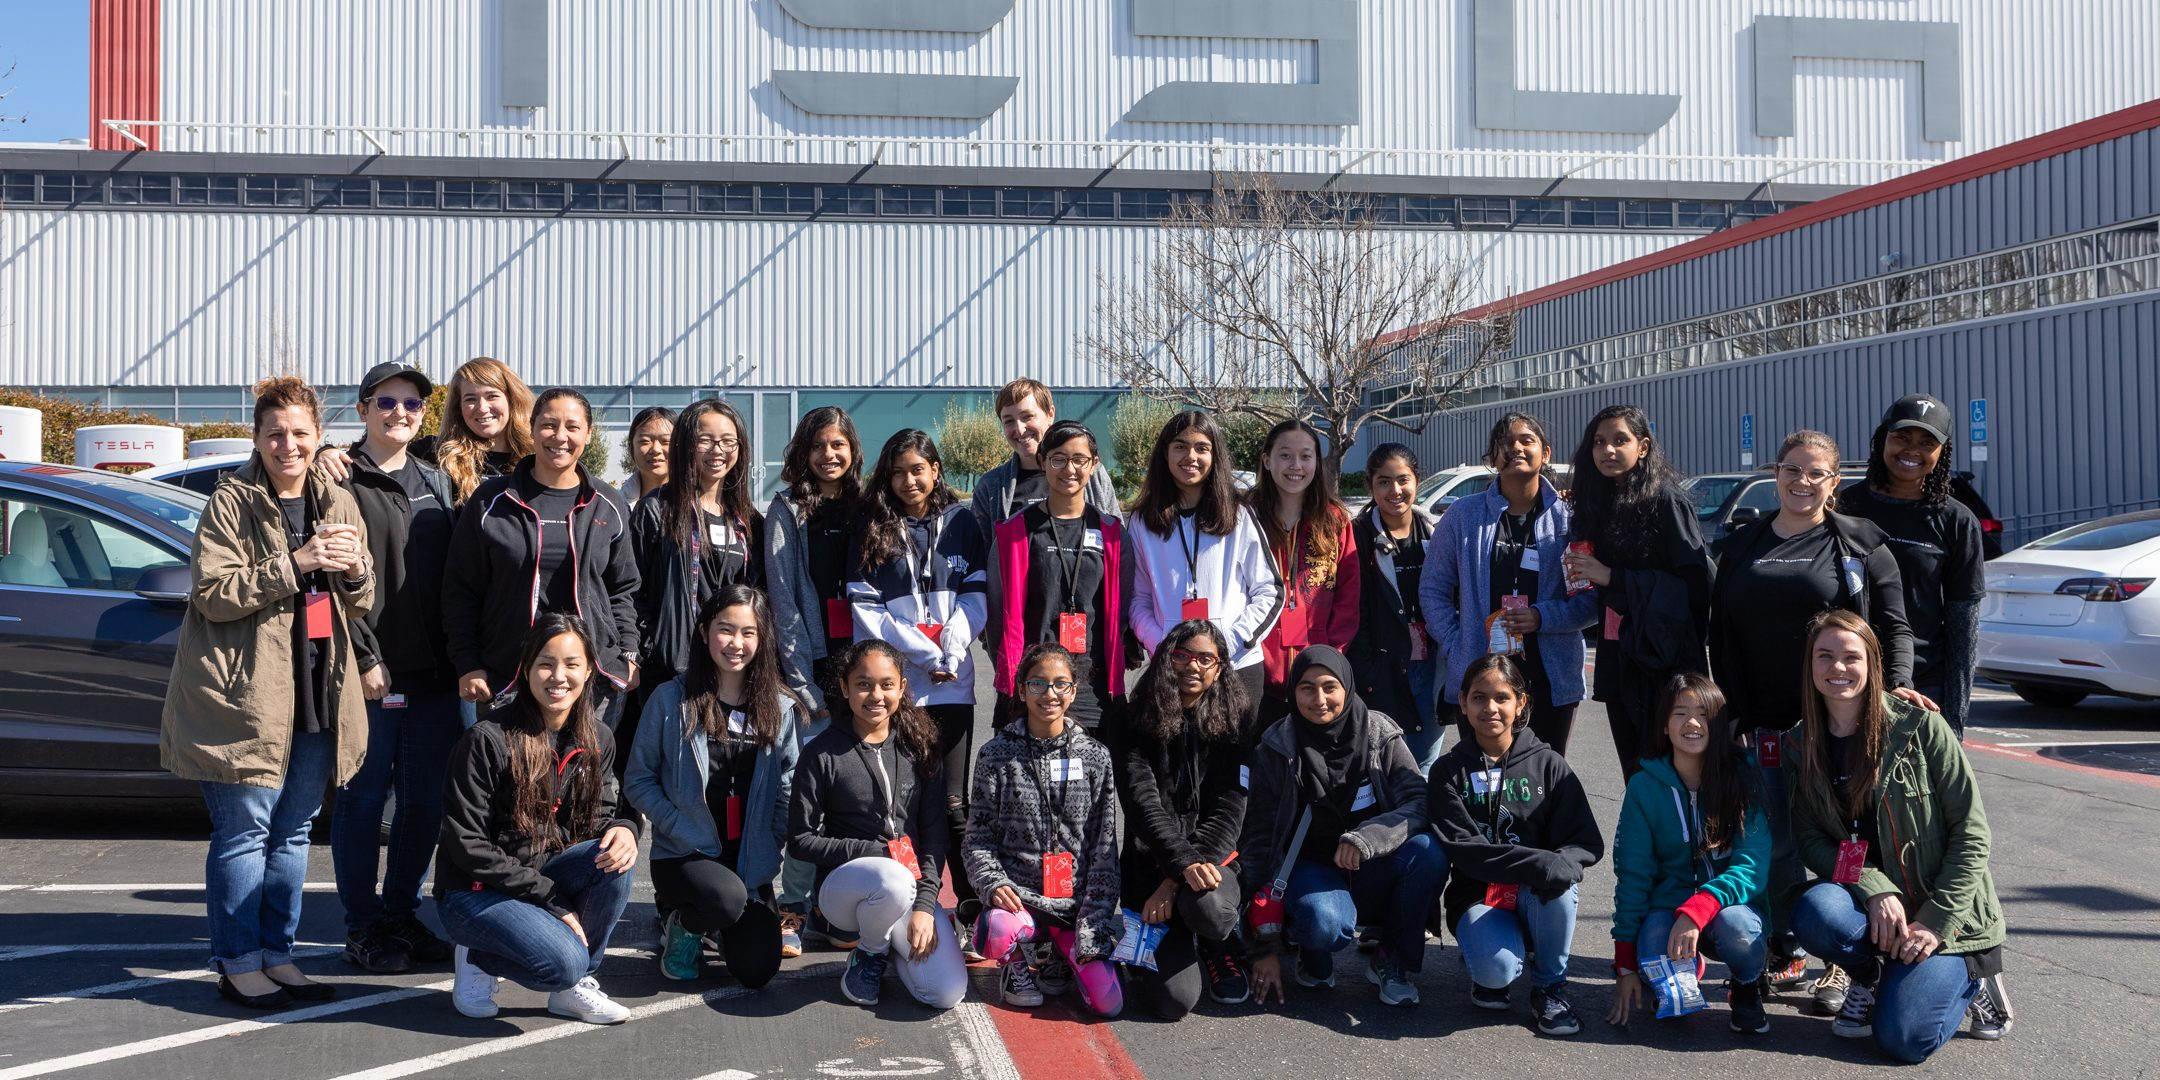 Tesla hosts hundreds of students for 'Introduce a Girl to Engineering Day' at 8 facilities